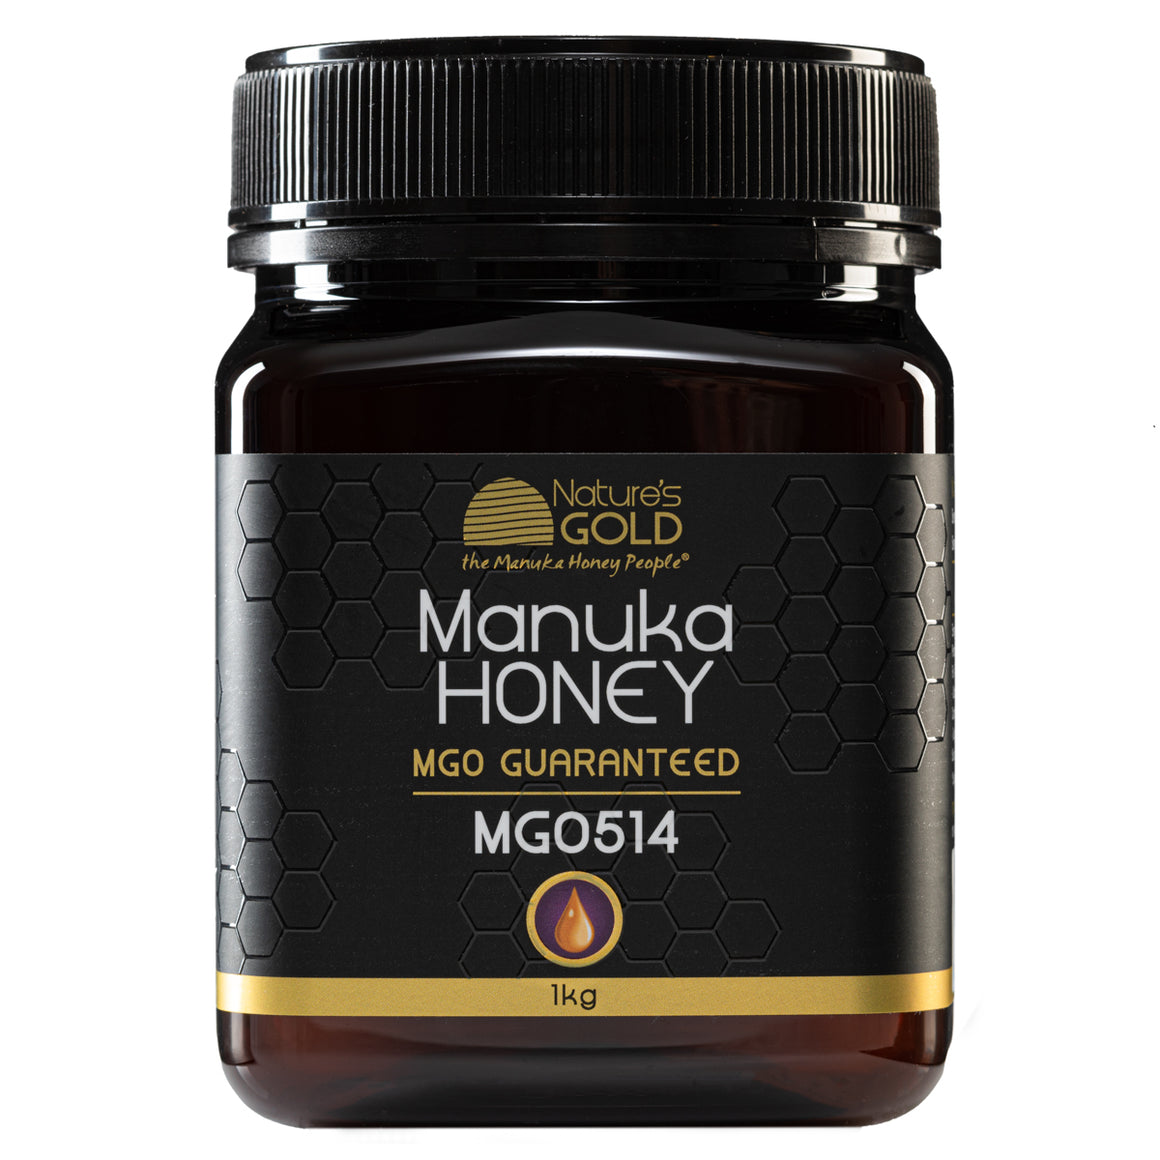 1kg size - 100% RAW AUSTRALIAN MANUKA HONEY